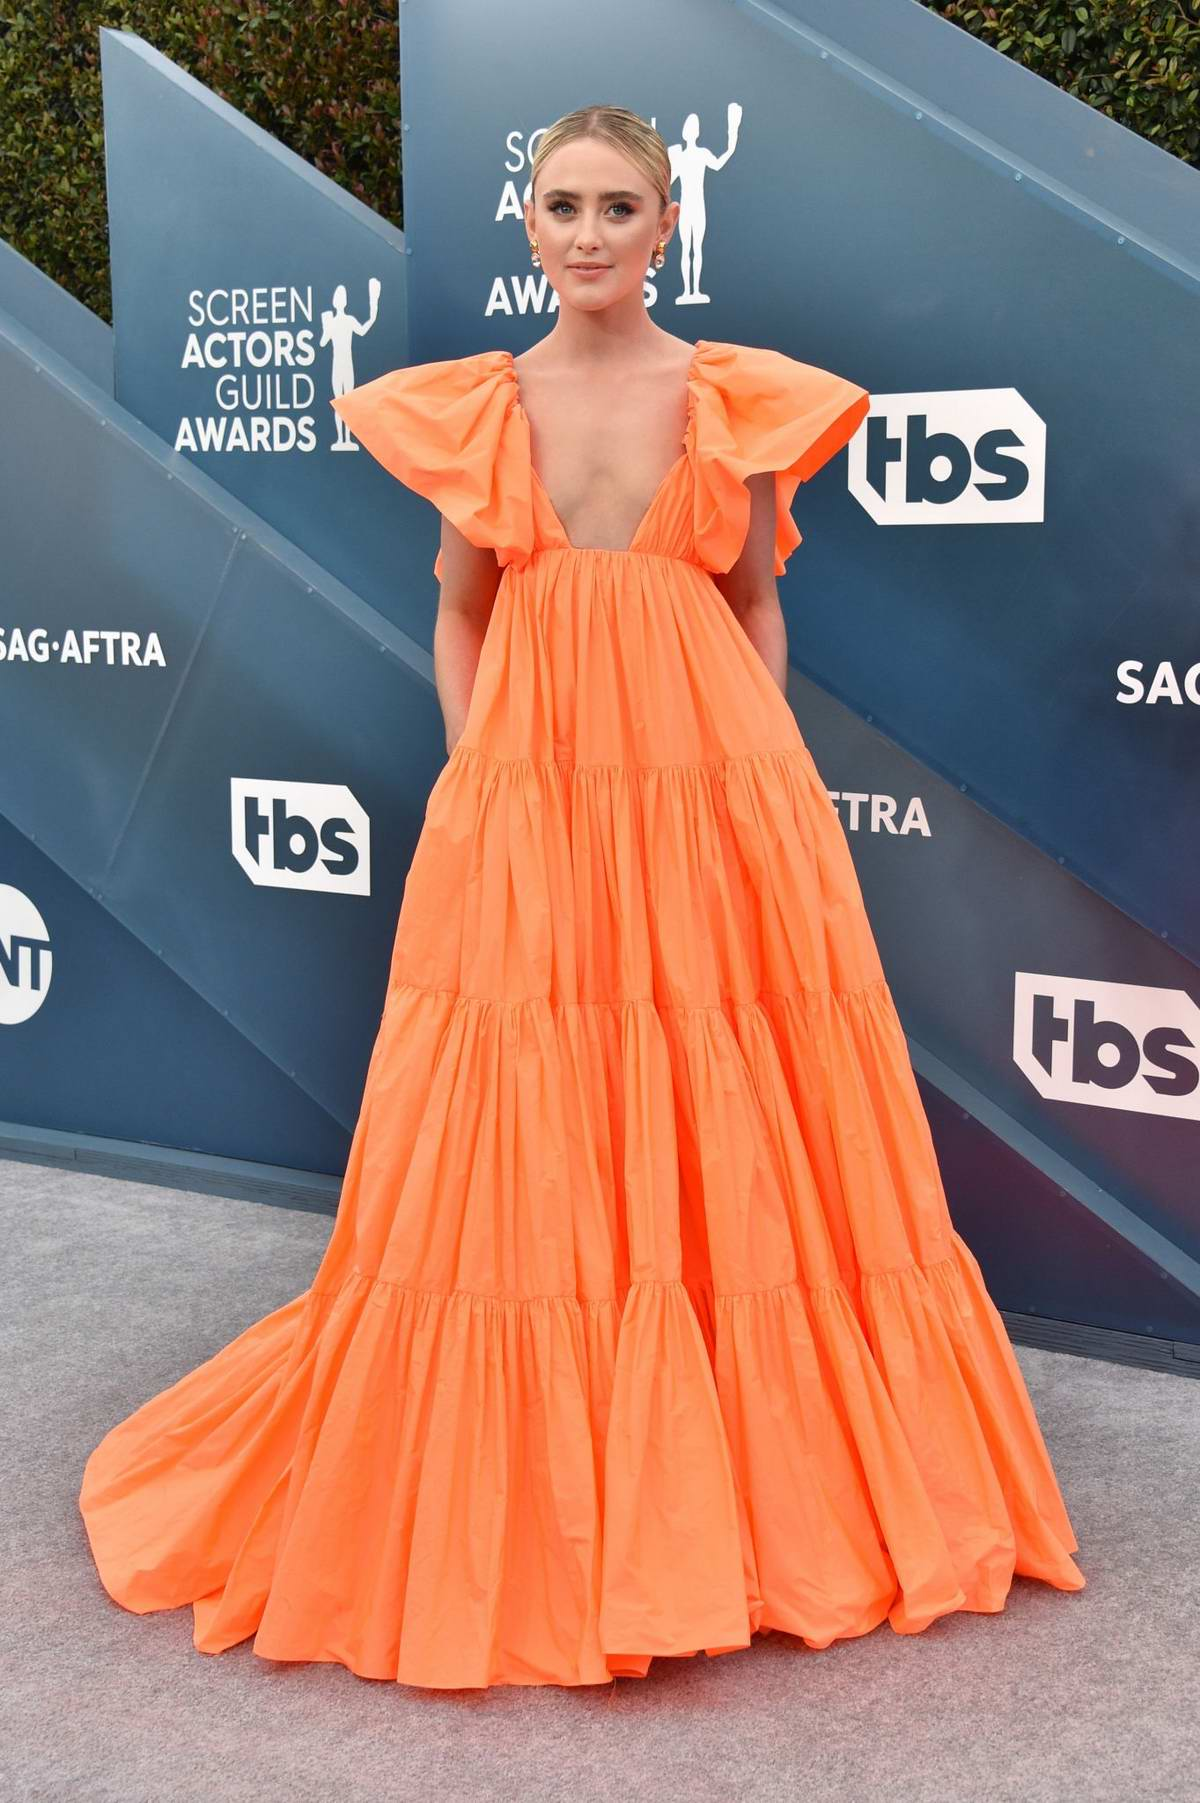 Kathryn Newton attends the 26th Annual Screen Actors Guild Awards at the Shrine Auditorium in Los Angeles